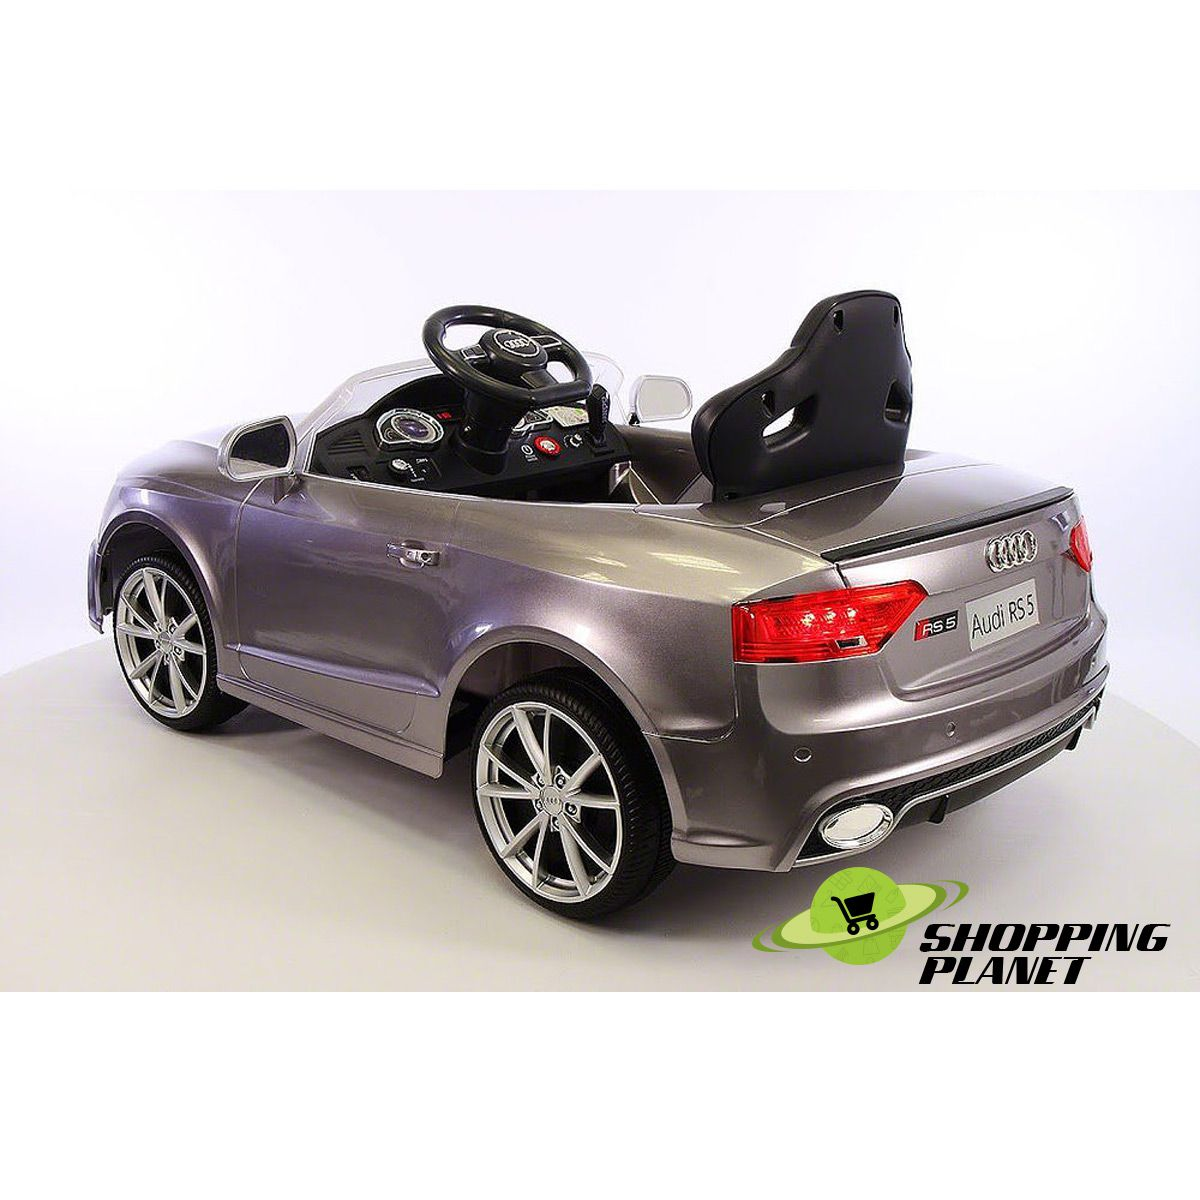 Audi Rs5 12v Chargeable Battery Car For Kids Shopping